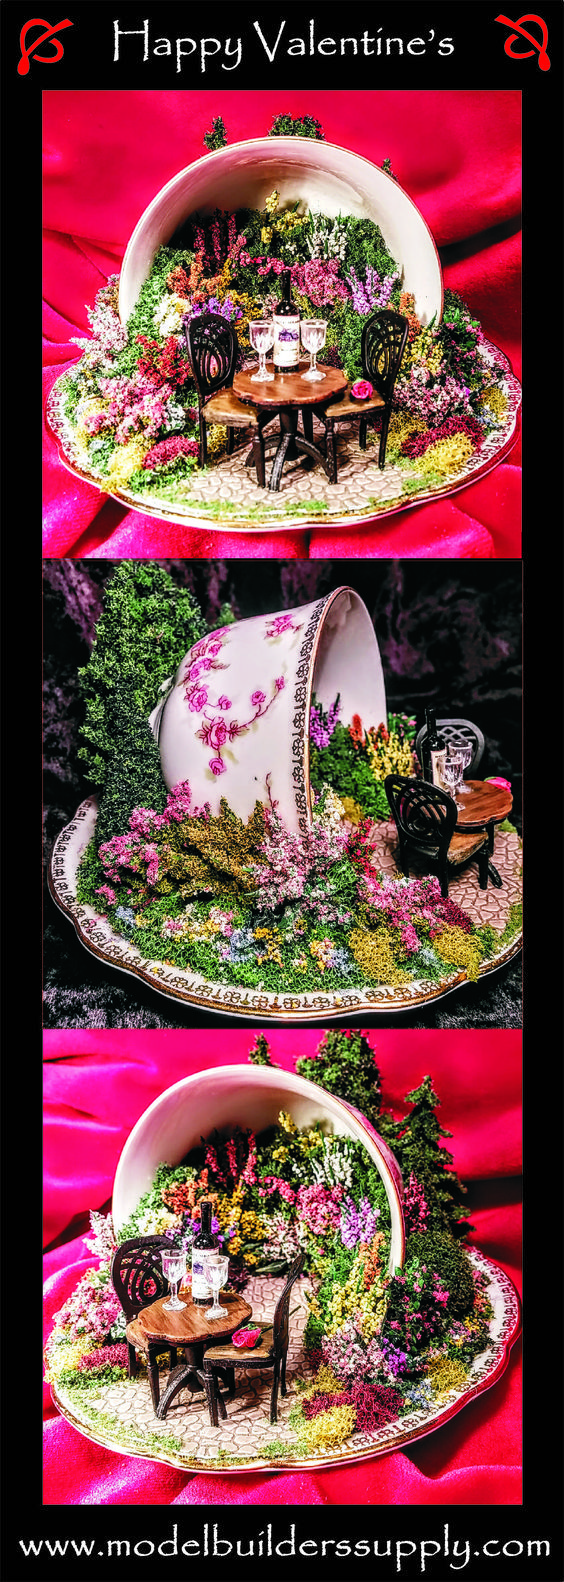 """A rose is just a rose, until you put it in a miniature English garden inside a teacup, then it's something very special. This teacup is appropriately named """" Bridal Rose"""":"""